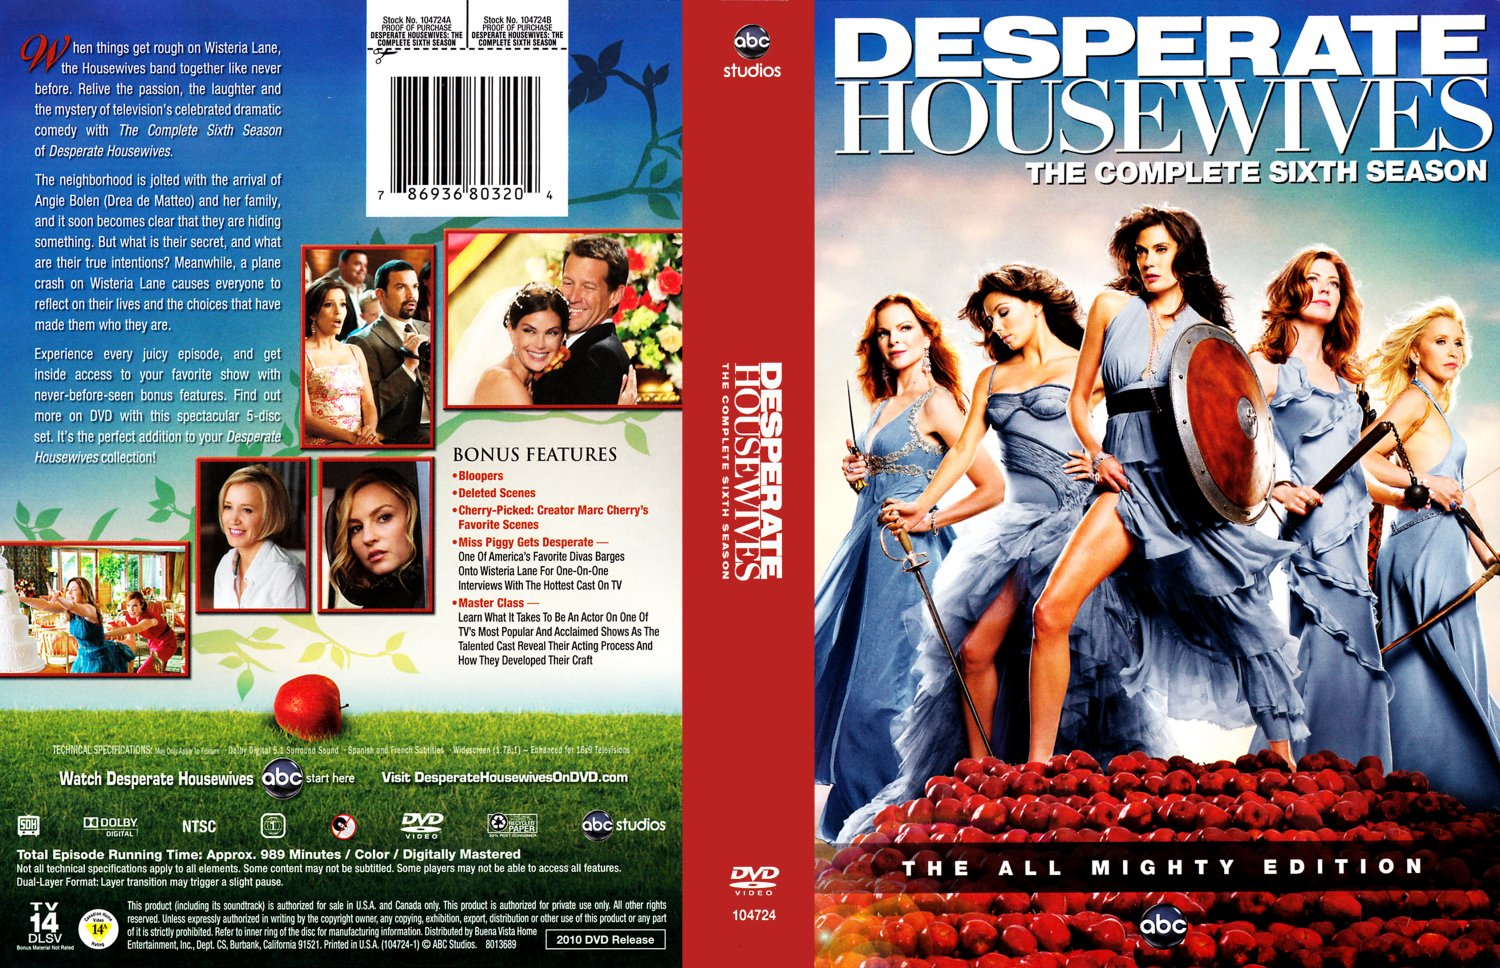 desperate housewives season 6 r1 tv dvd scanned covers. Black Bedroom Furniture Sets. Home Design Ideas